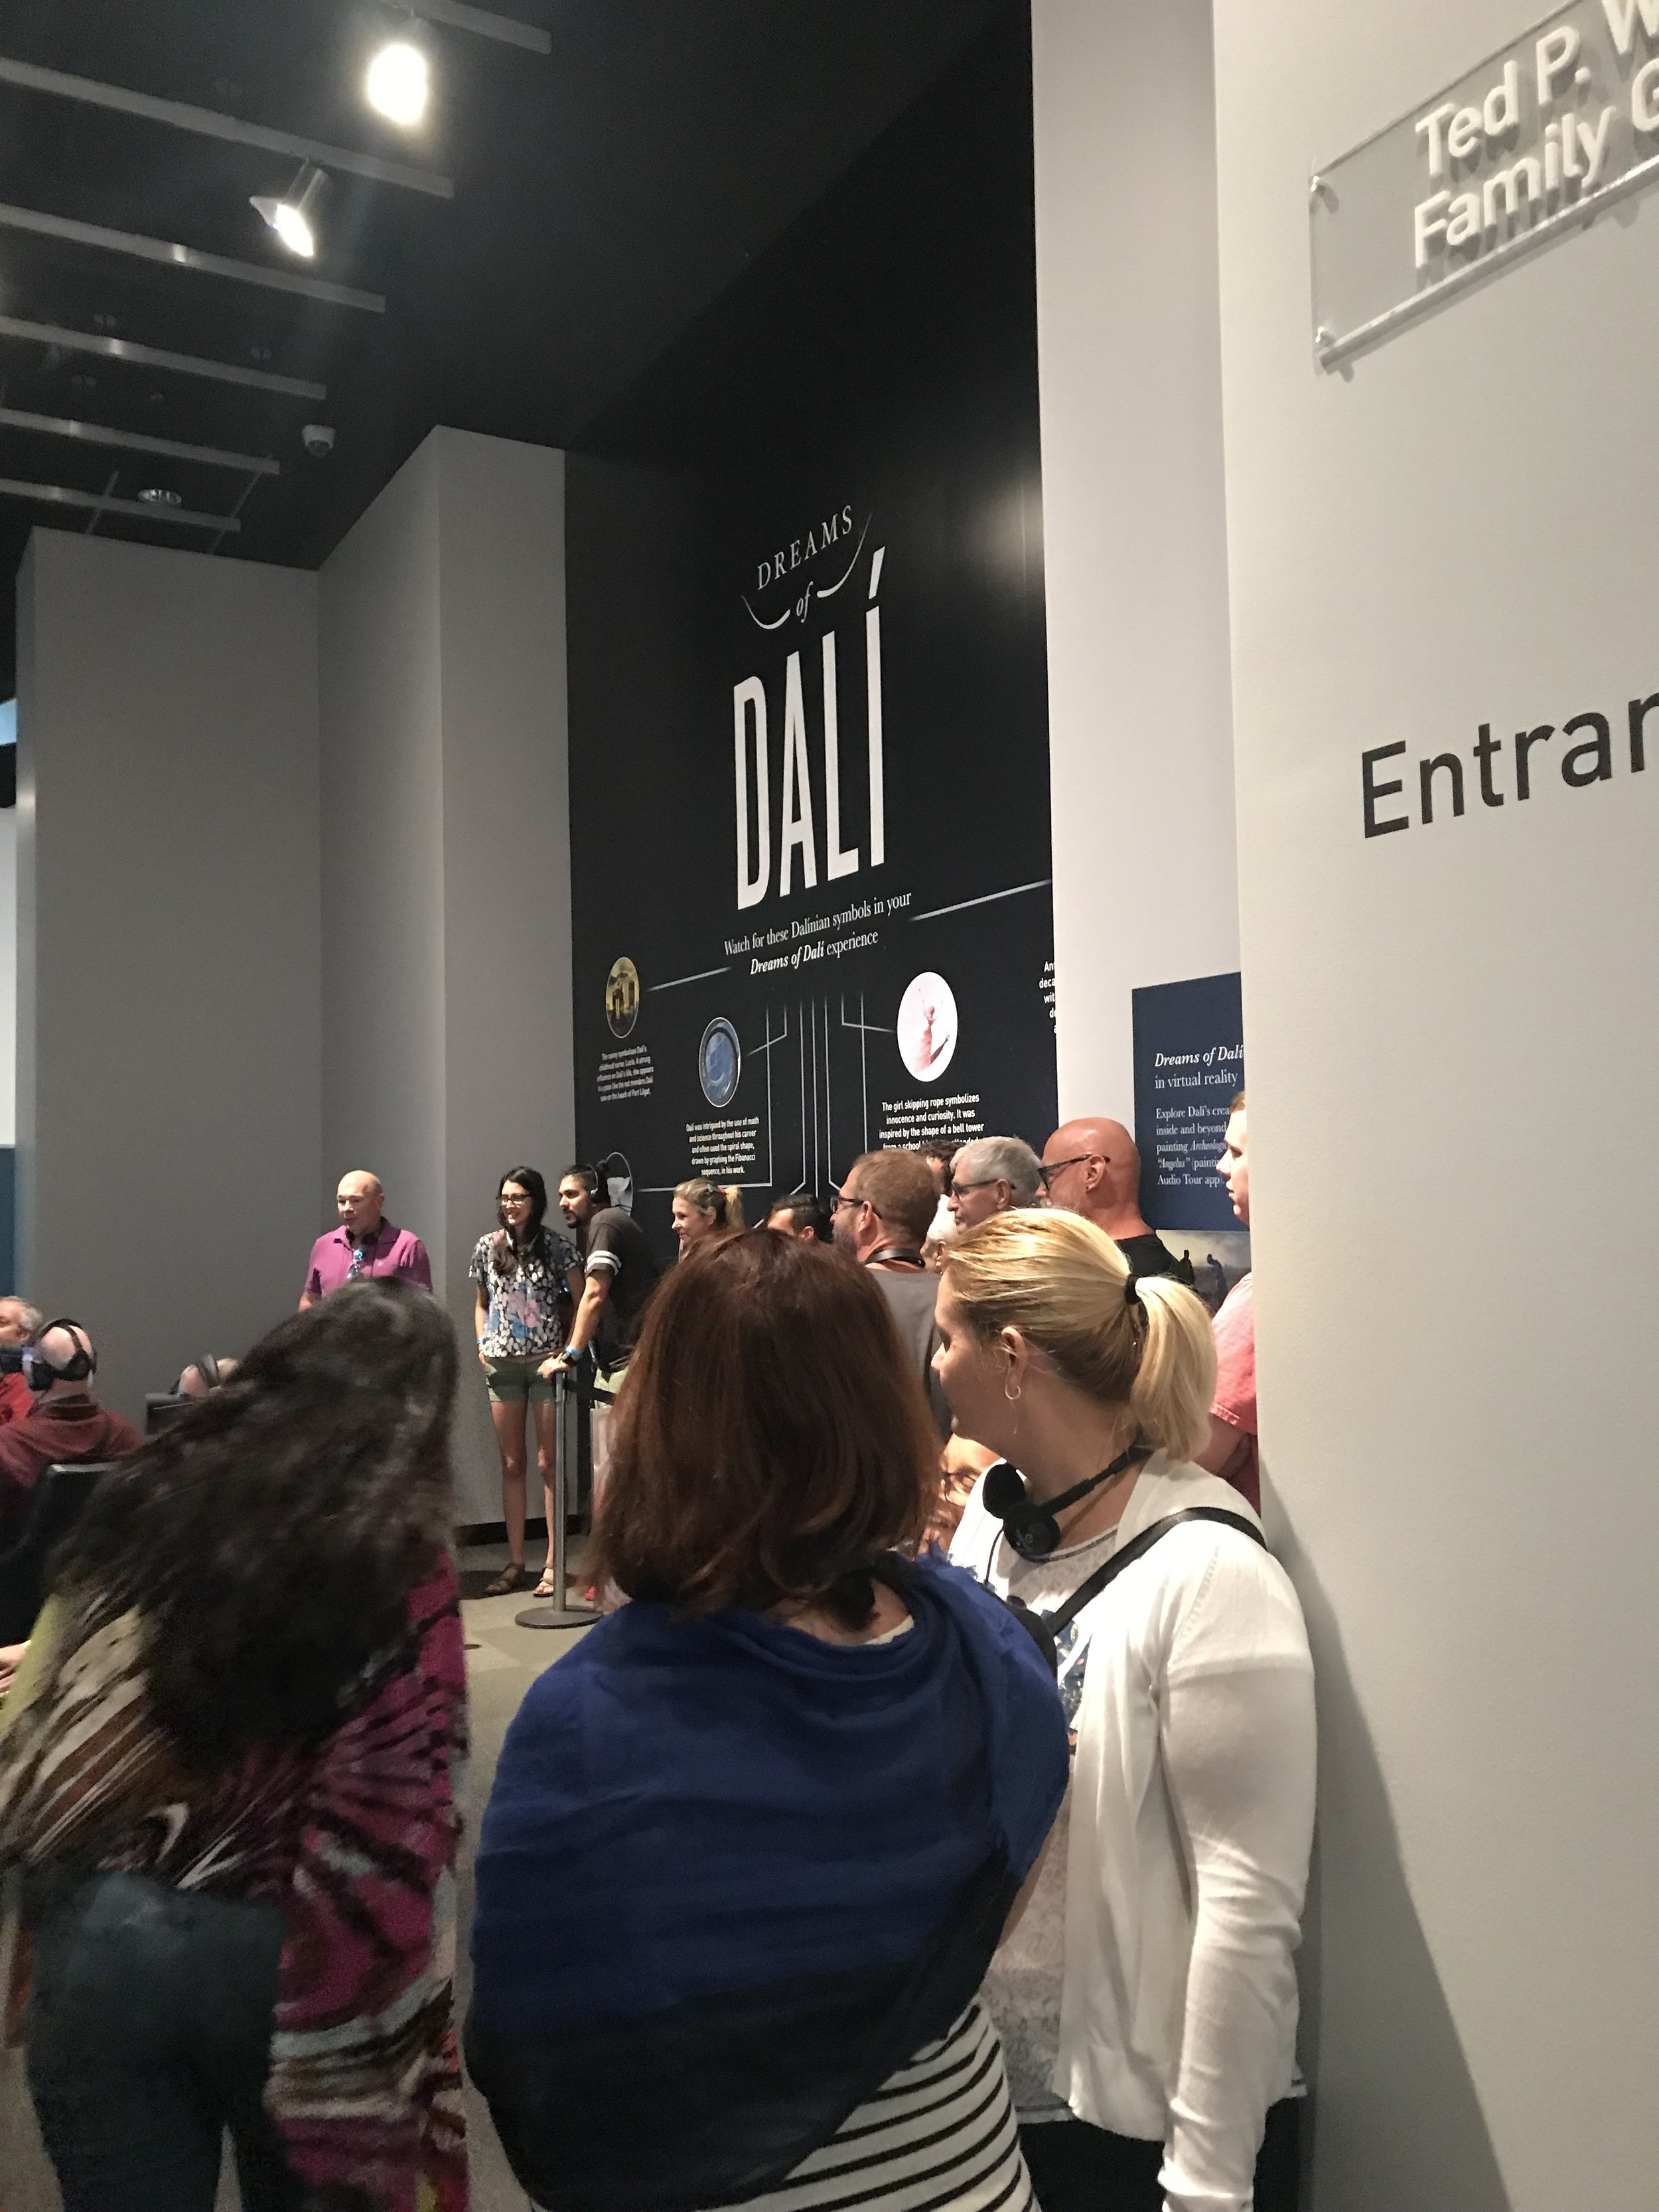 The Dreams of Dali VR experience at the Salvador Dali Museum in Saint Petersburg, Florida.